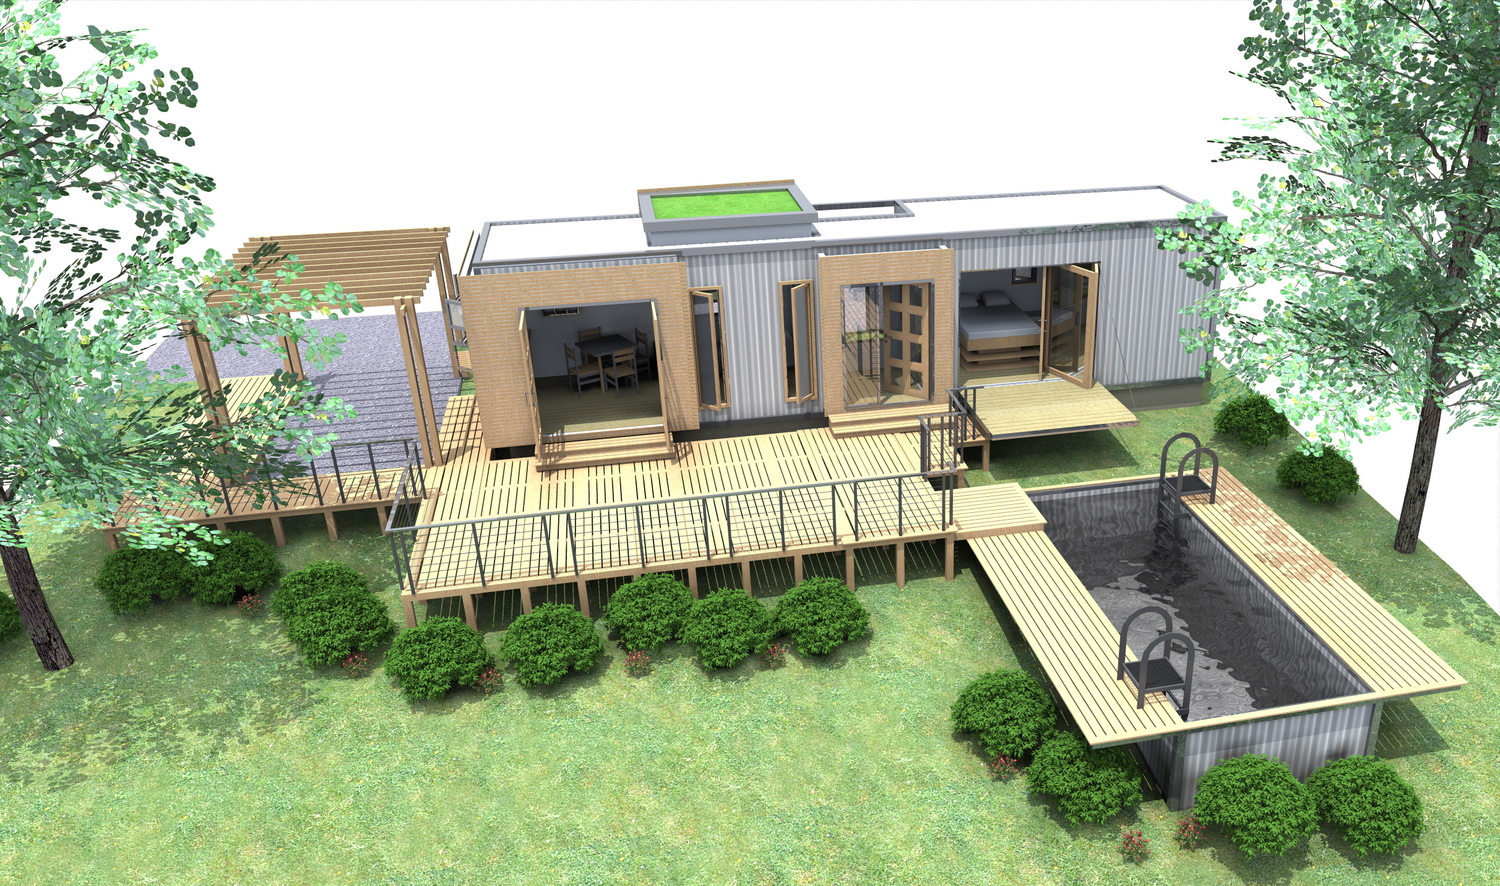 Shipping container homes 40ft shipping container home eco pig designs sch 1 devon uk - Building shipping container homes ...